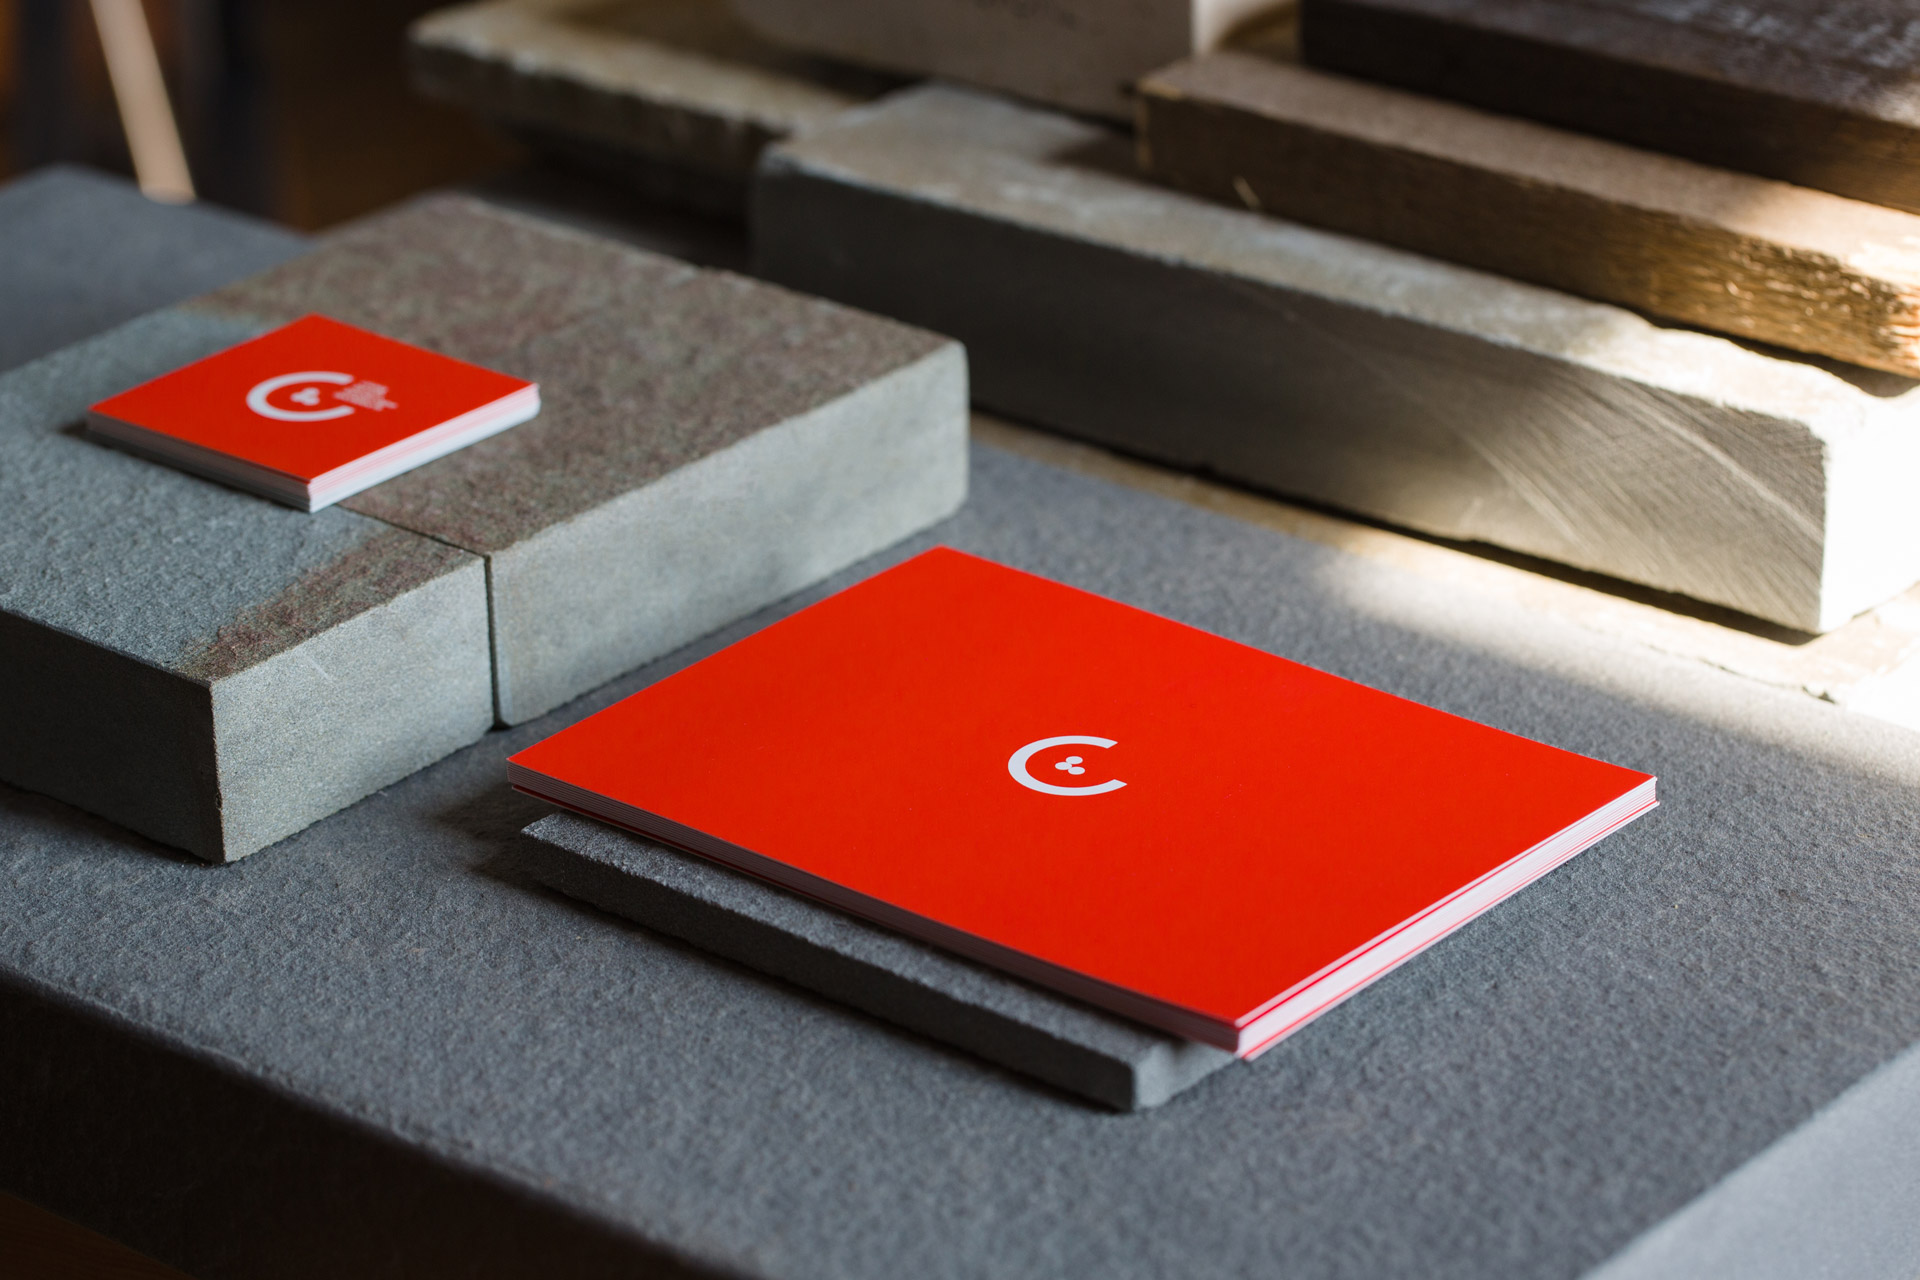 Stacks of red postcard and square business card displaying CLLA logomark sitting on blocks of stone